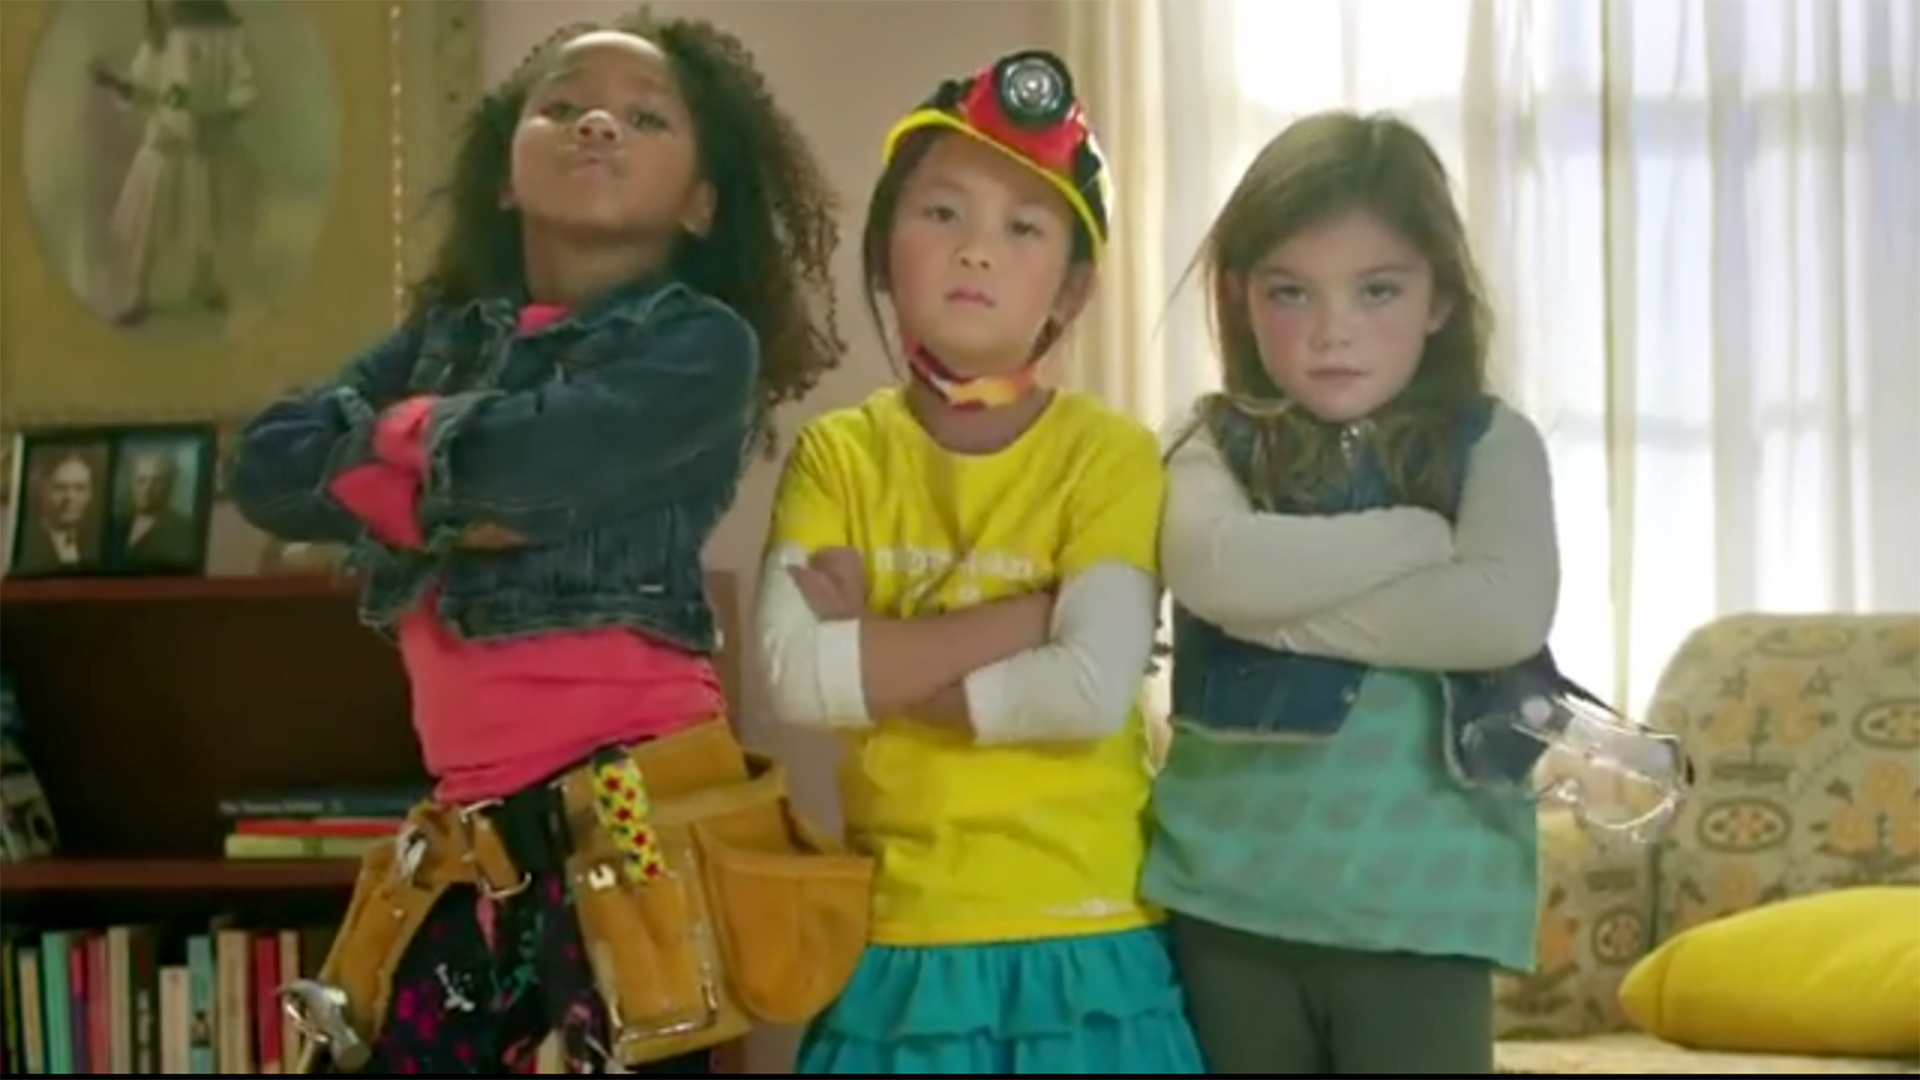 The Beastie Boys are suing GoldieBlox over its parody of the group's song